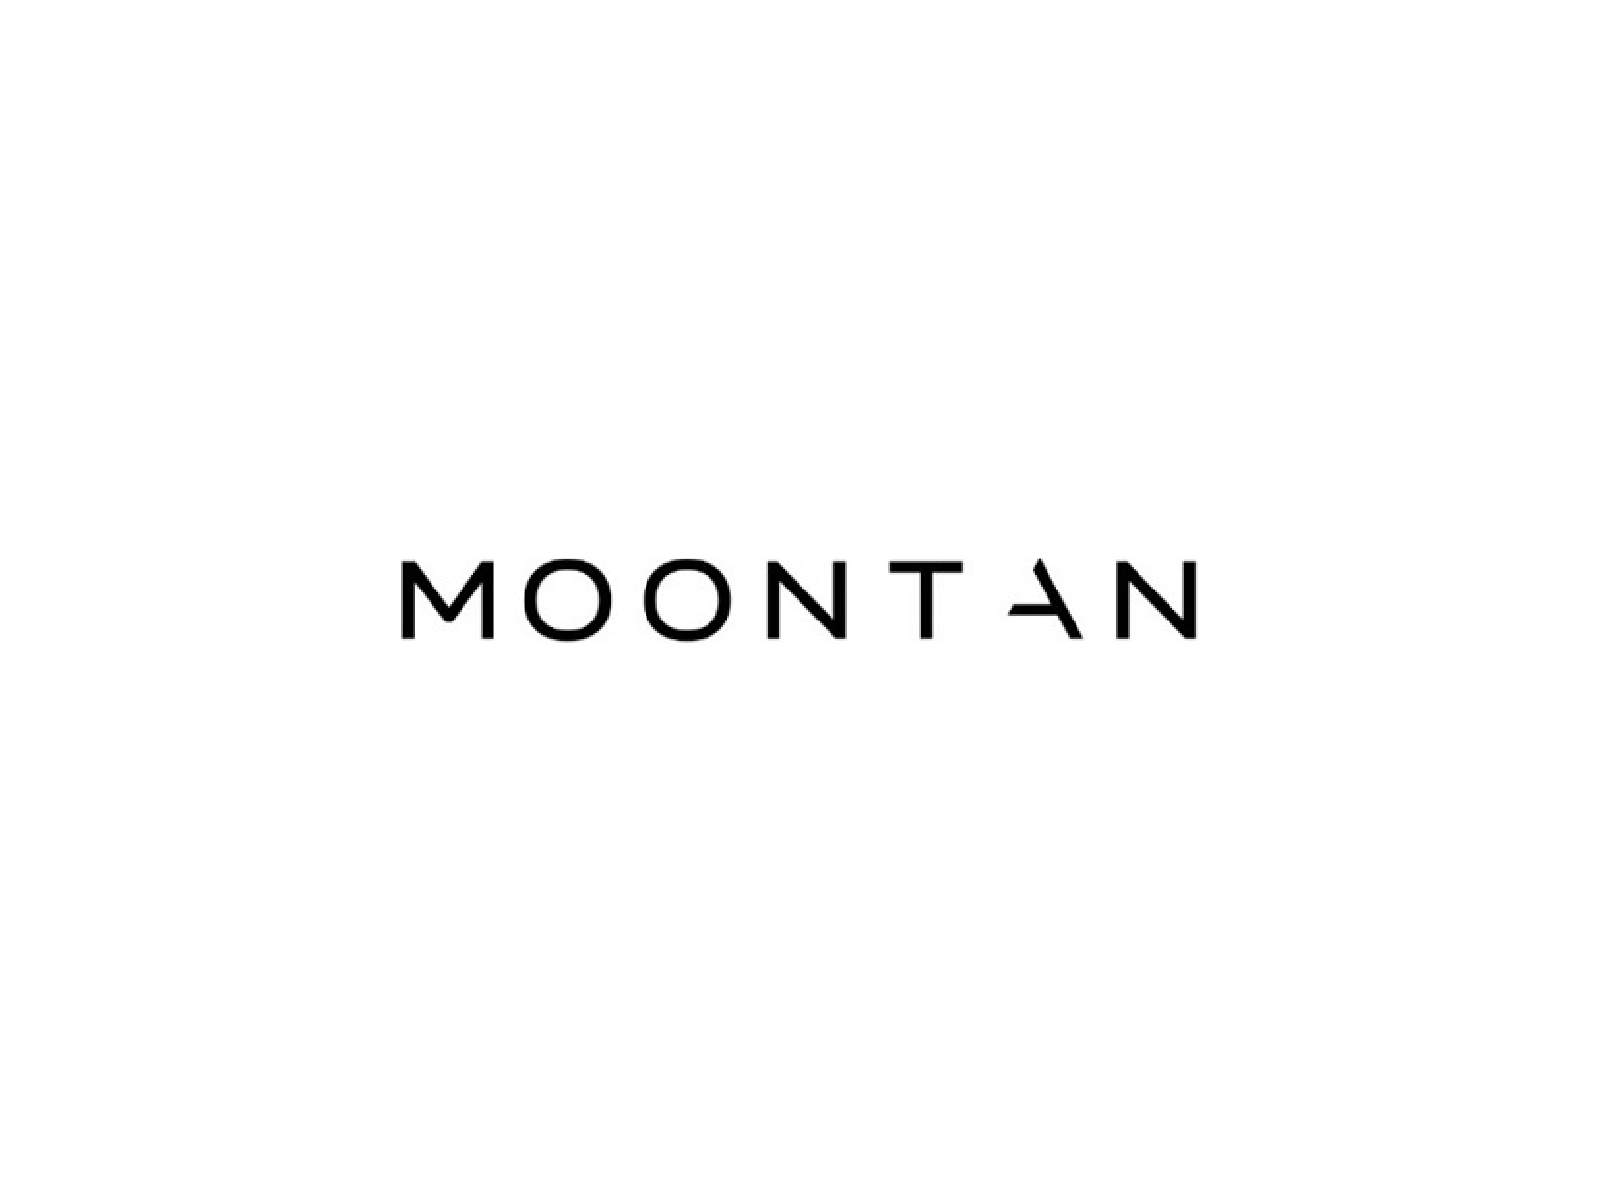 image of Moontan